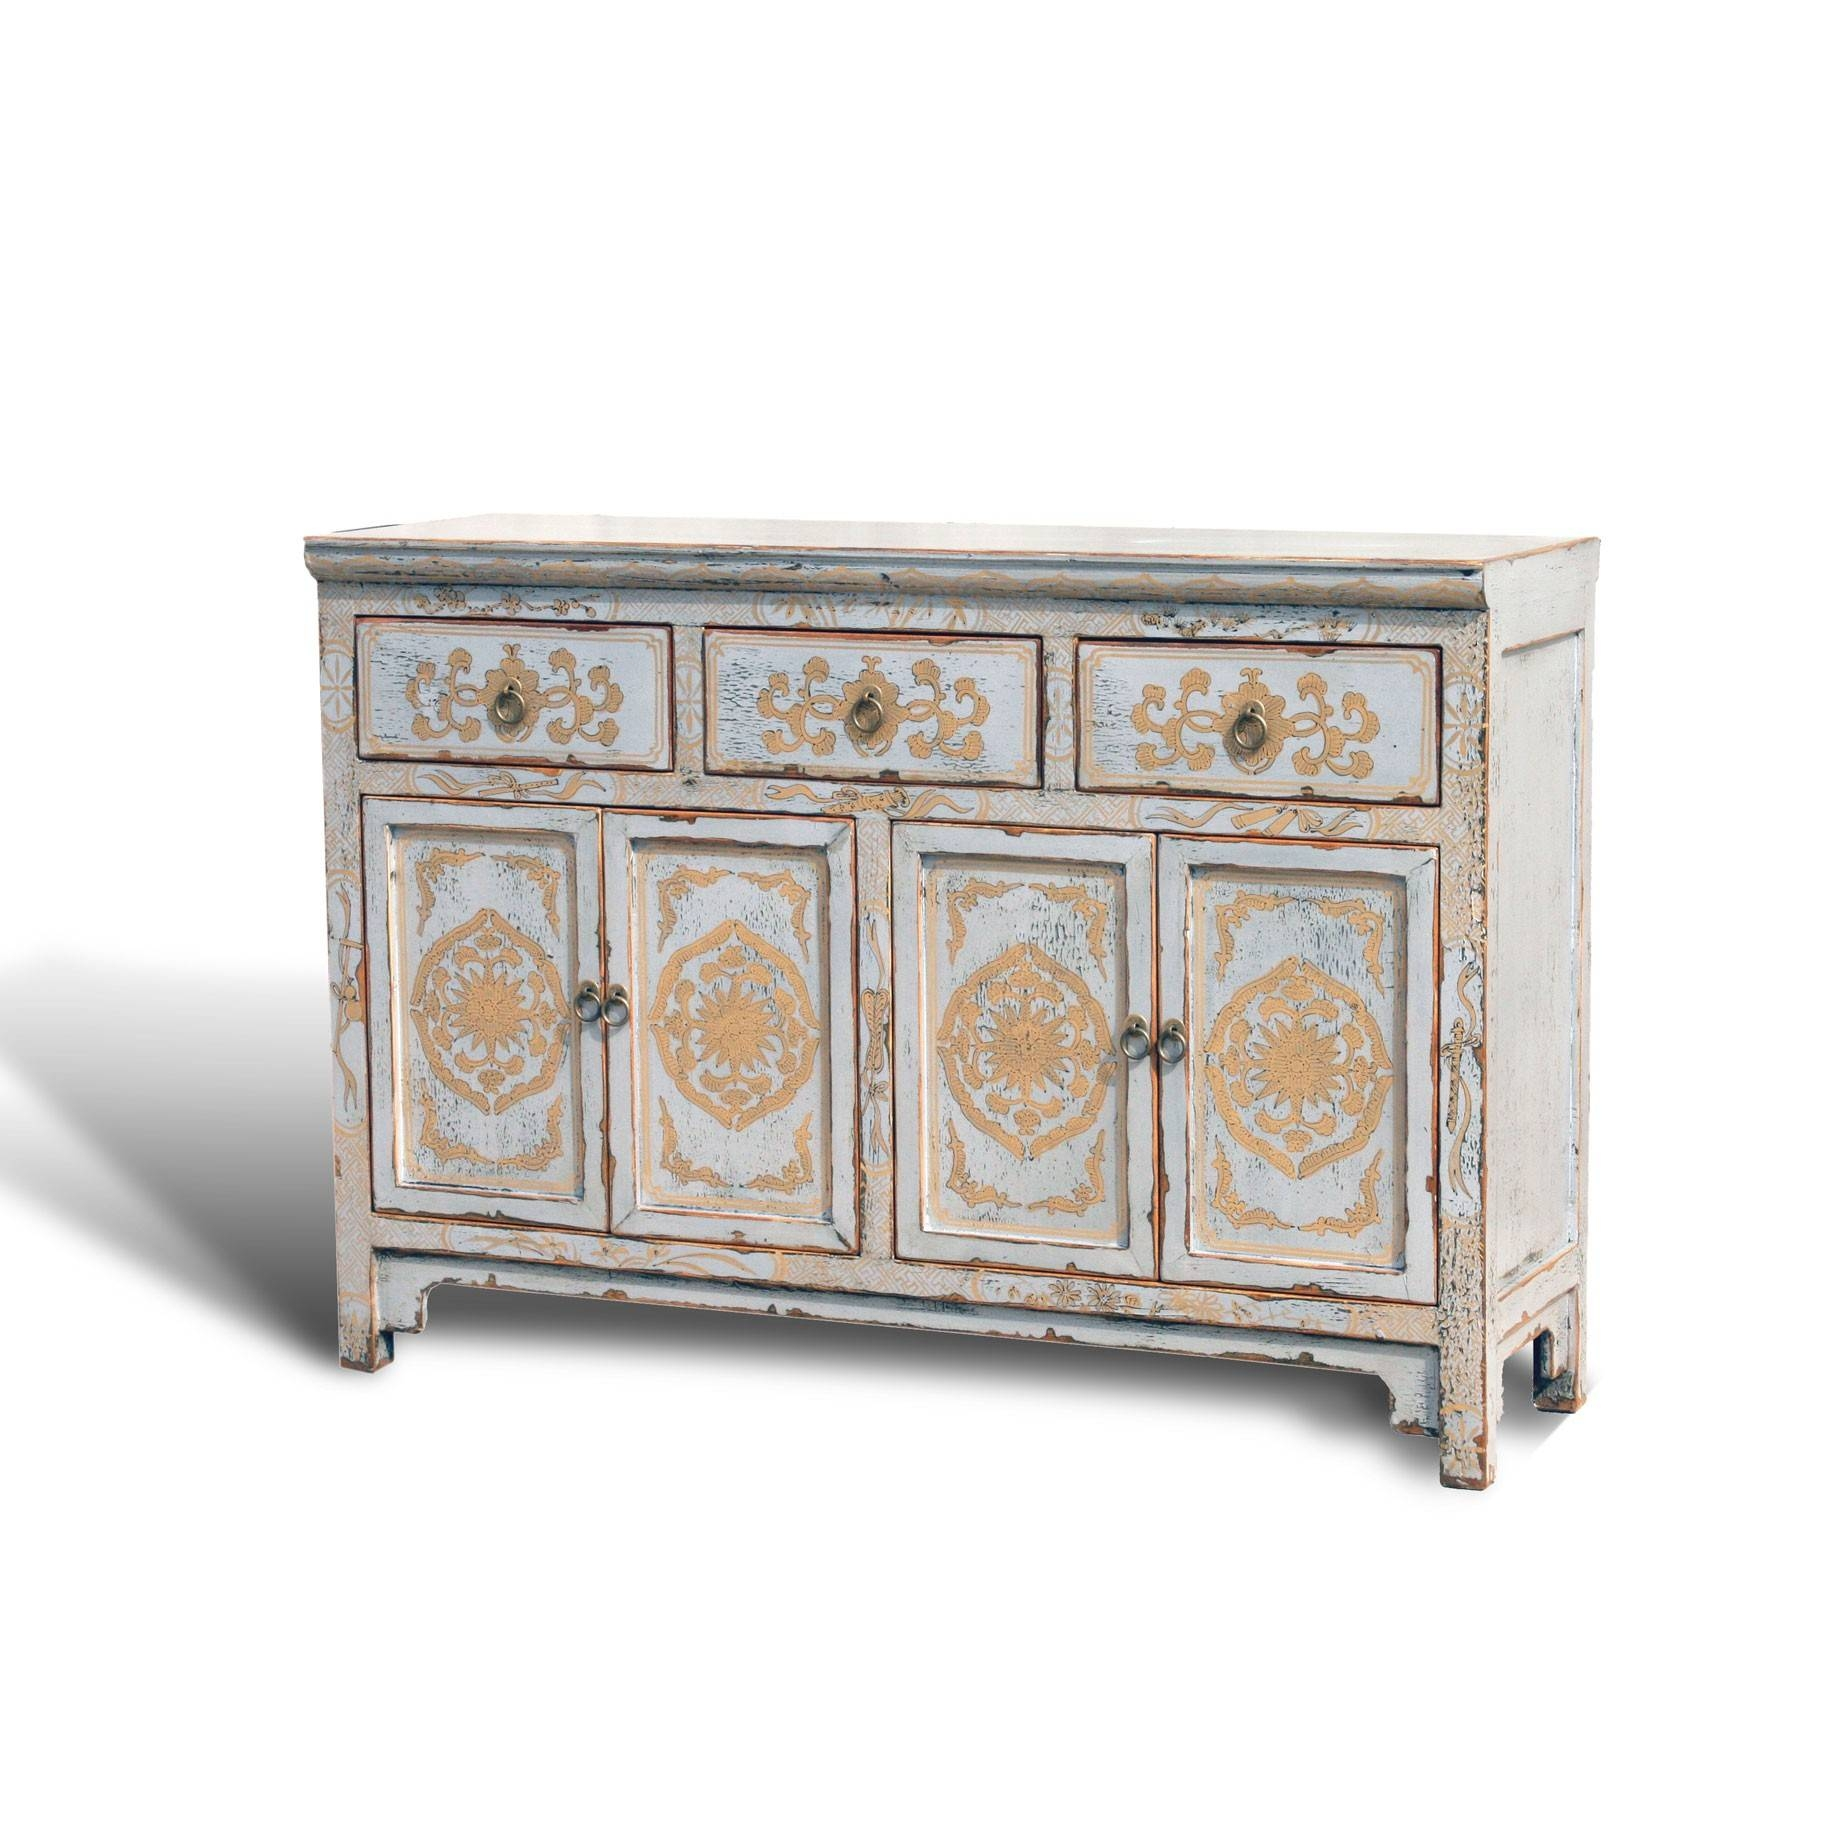 Buffets, Sideboard, Credenzas, Servers And Hutches – Acf China Regarding Most Recent Buffet Console Sideboards (#4 of 15)